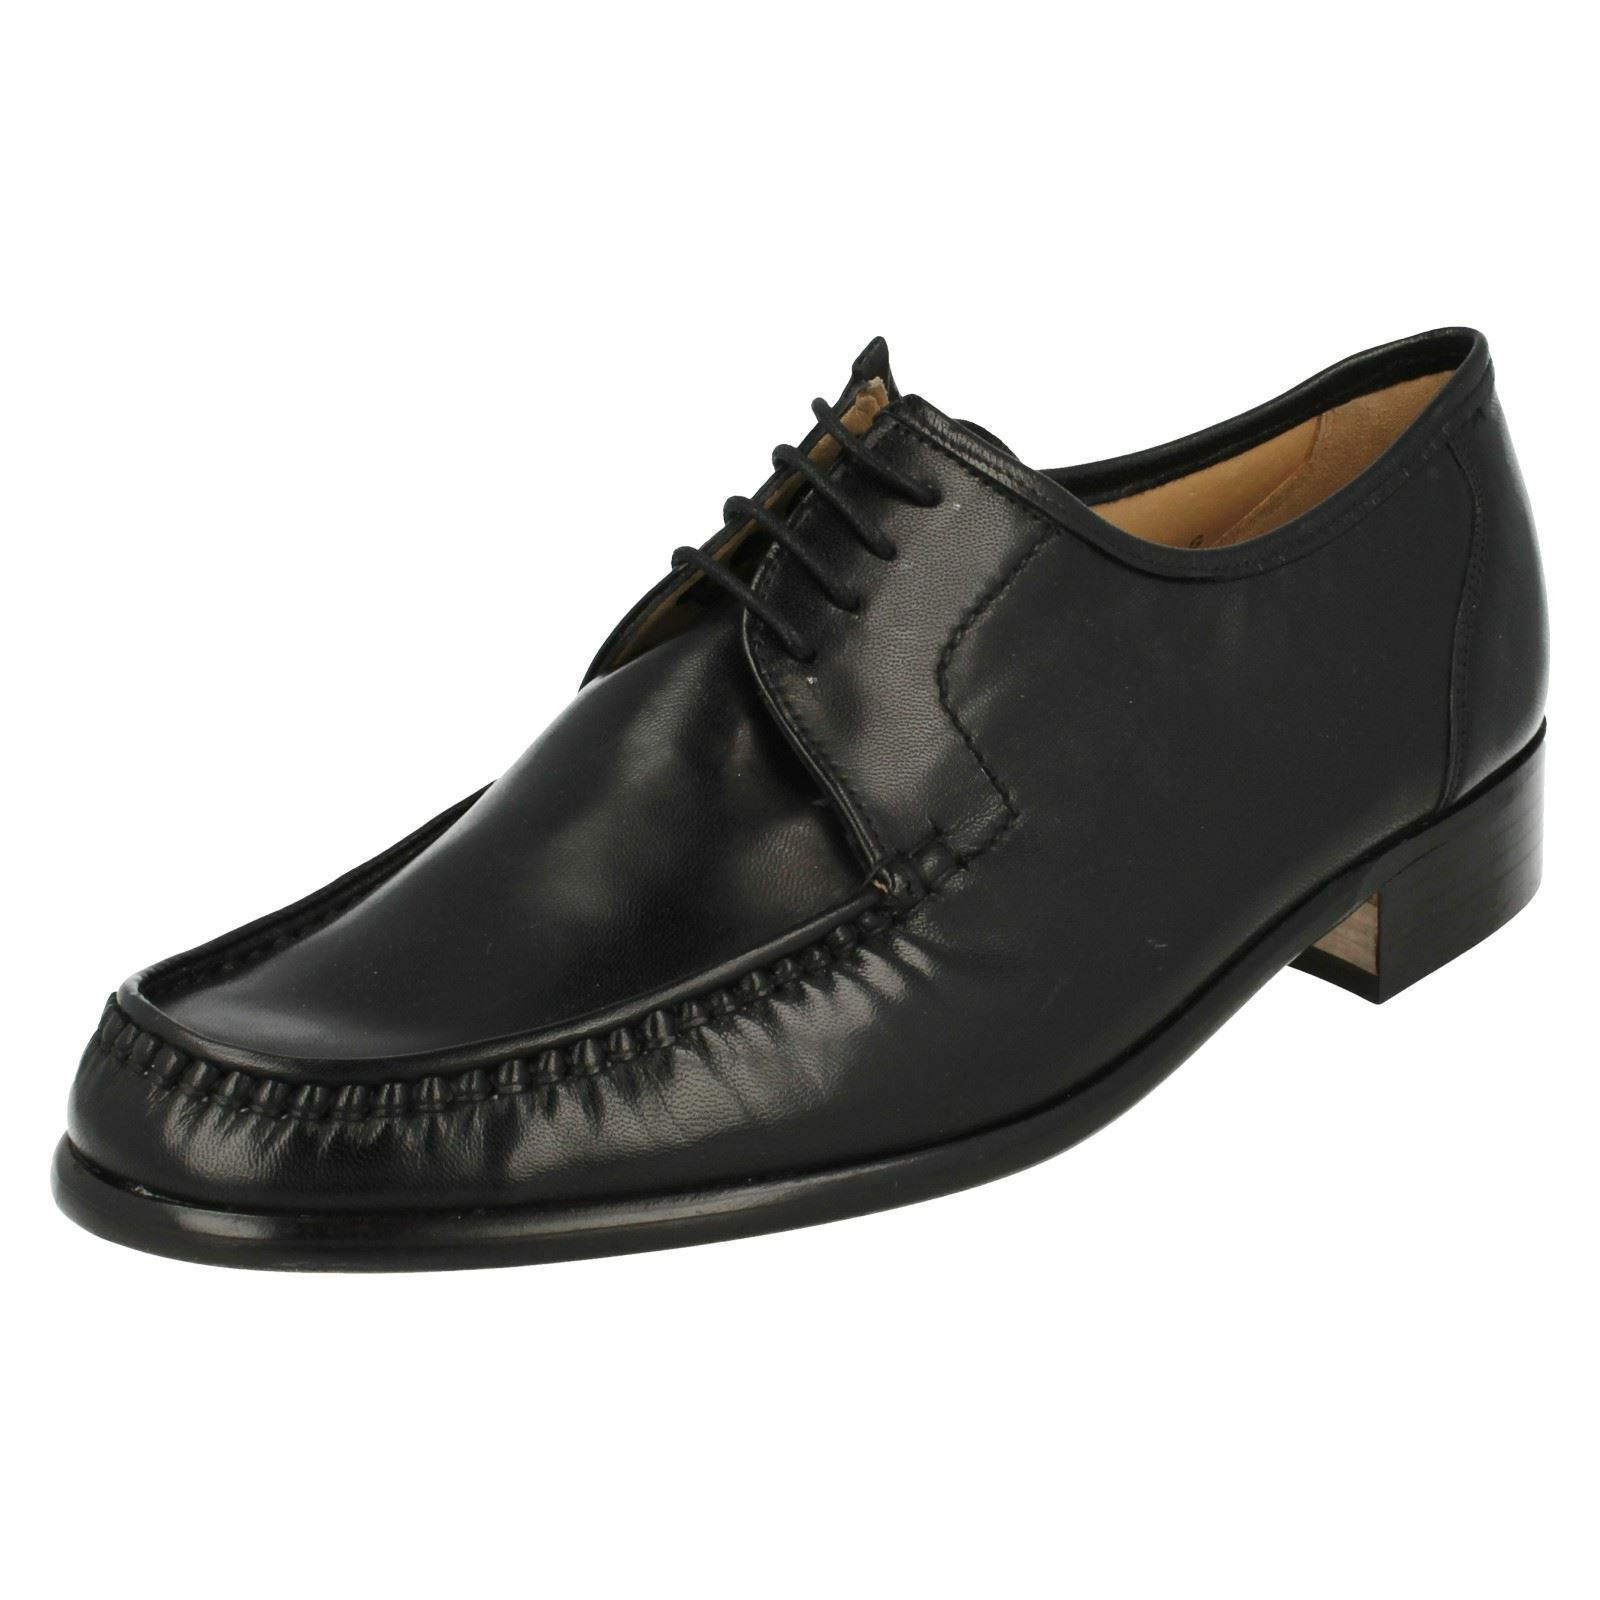 Mens Black leather Grenson Crewe 33343 lace-up G fitting